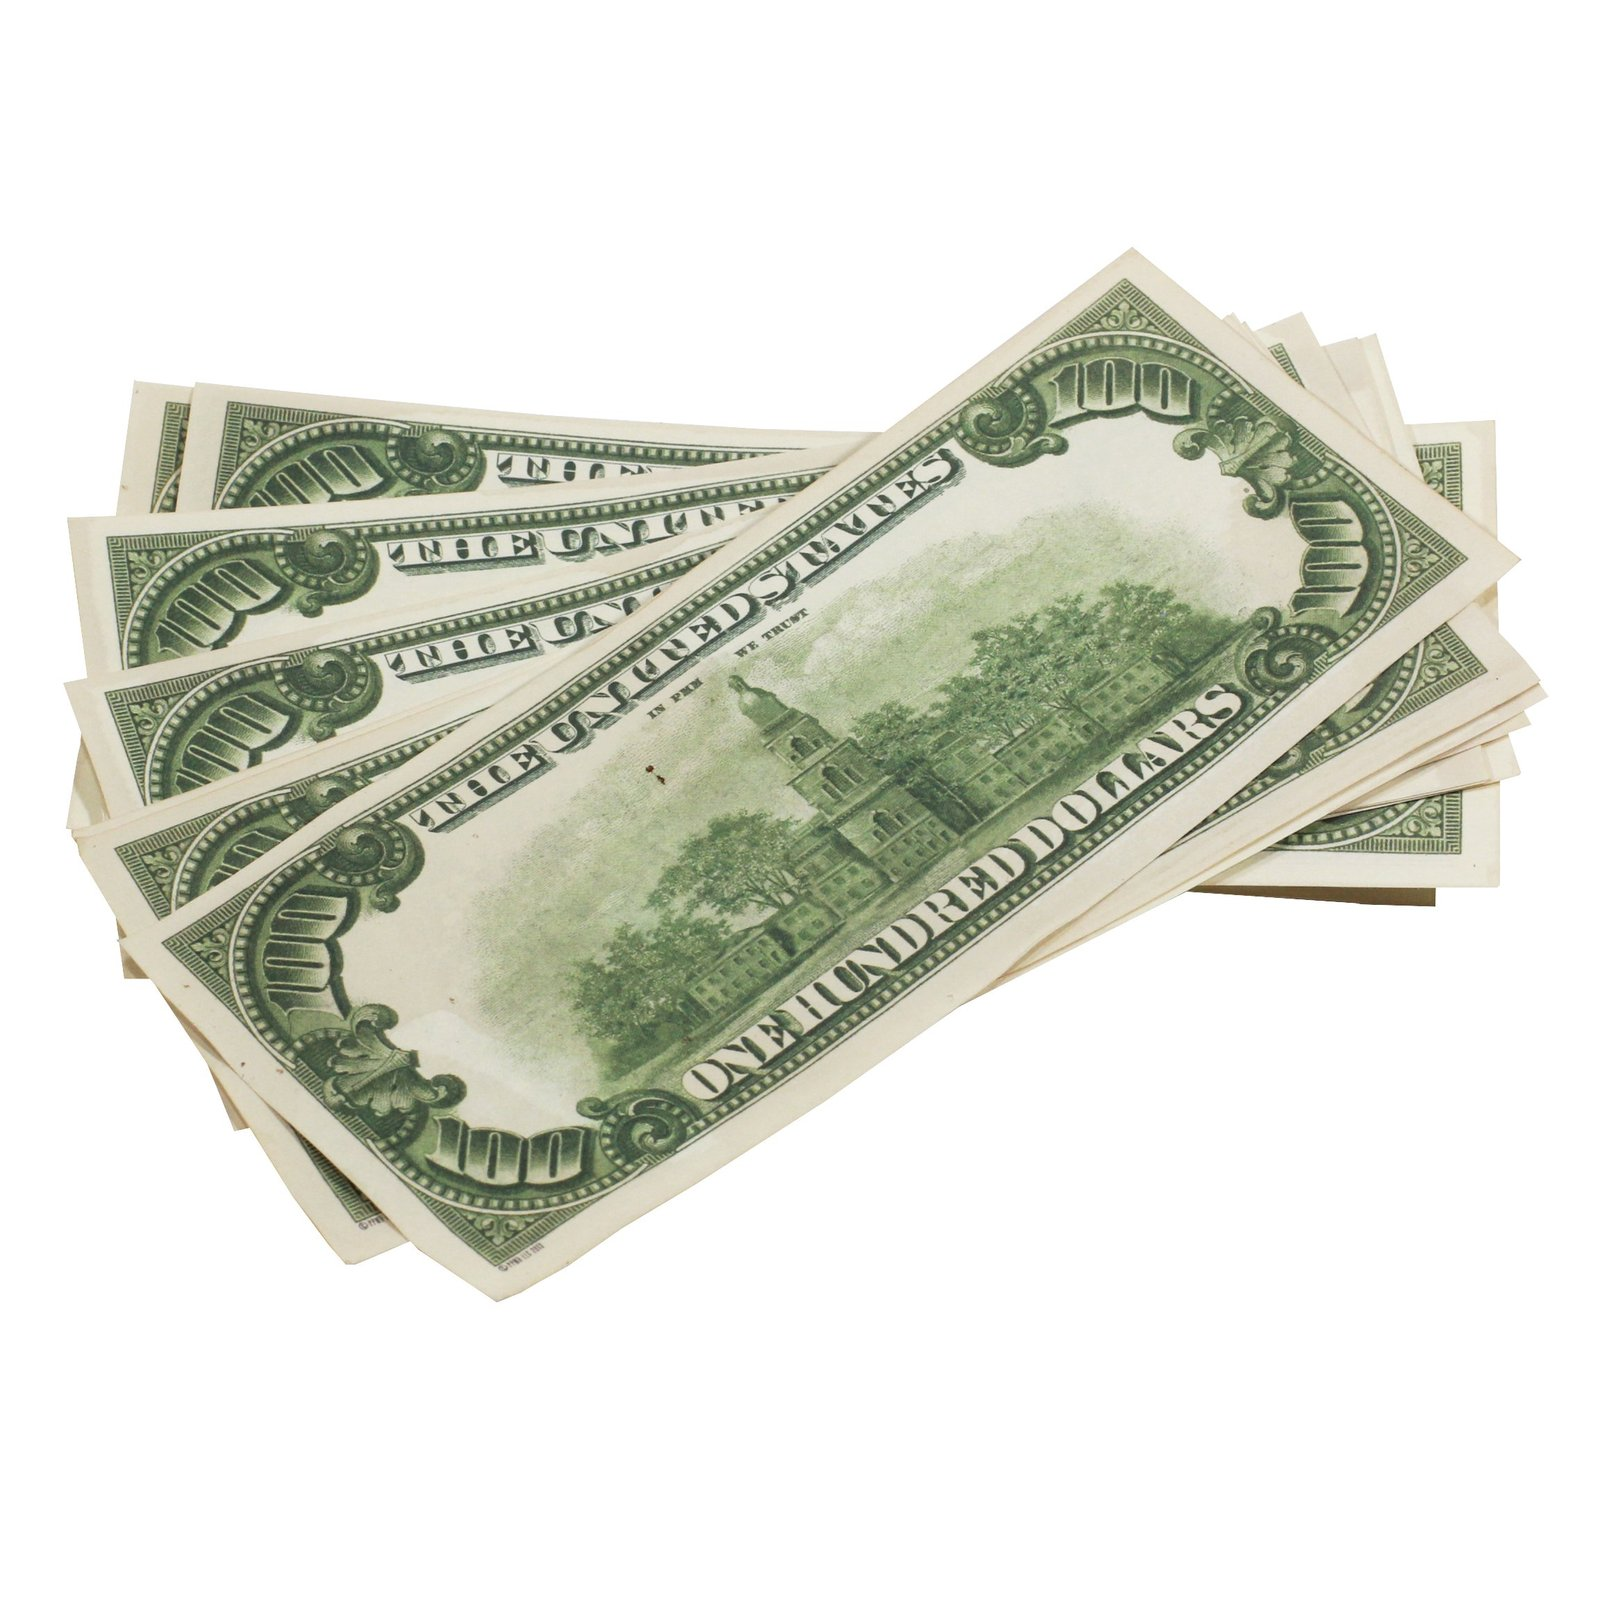 1980s Series $100s Aged $1,000,000 Full Print Package Realistic Prop Money image 7